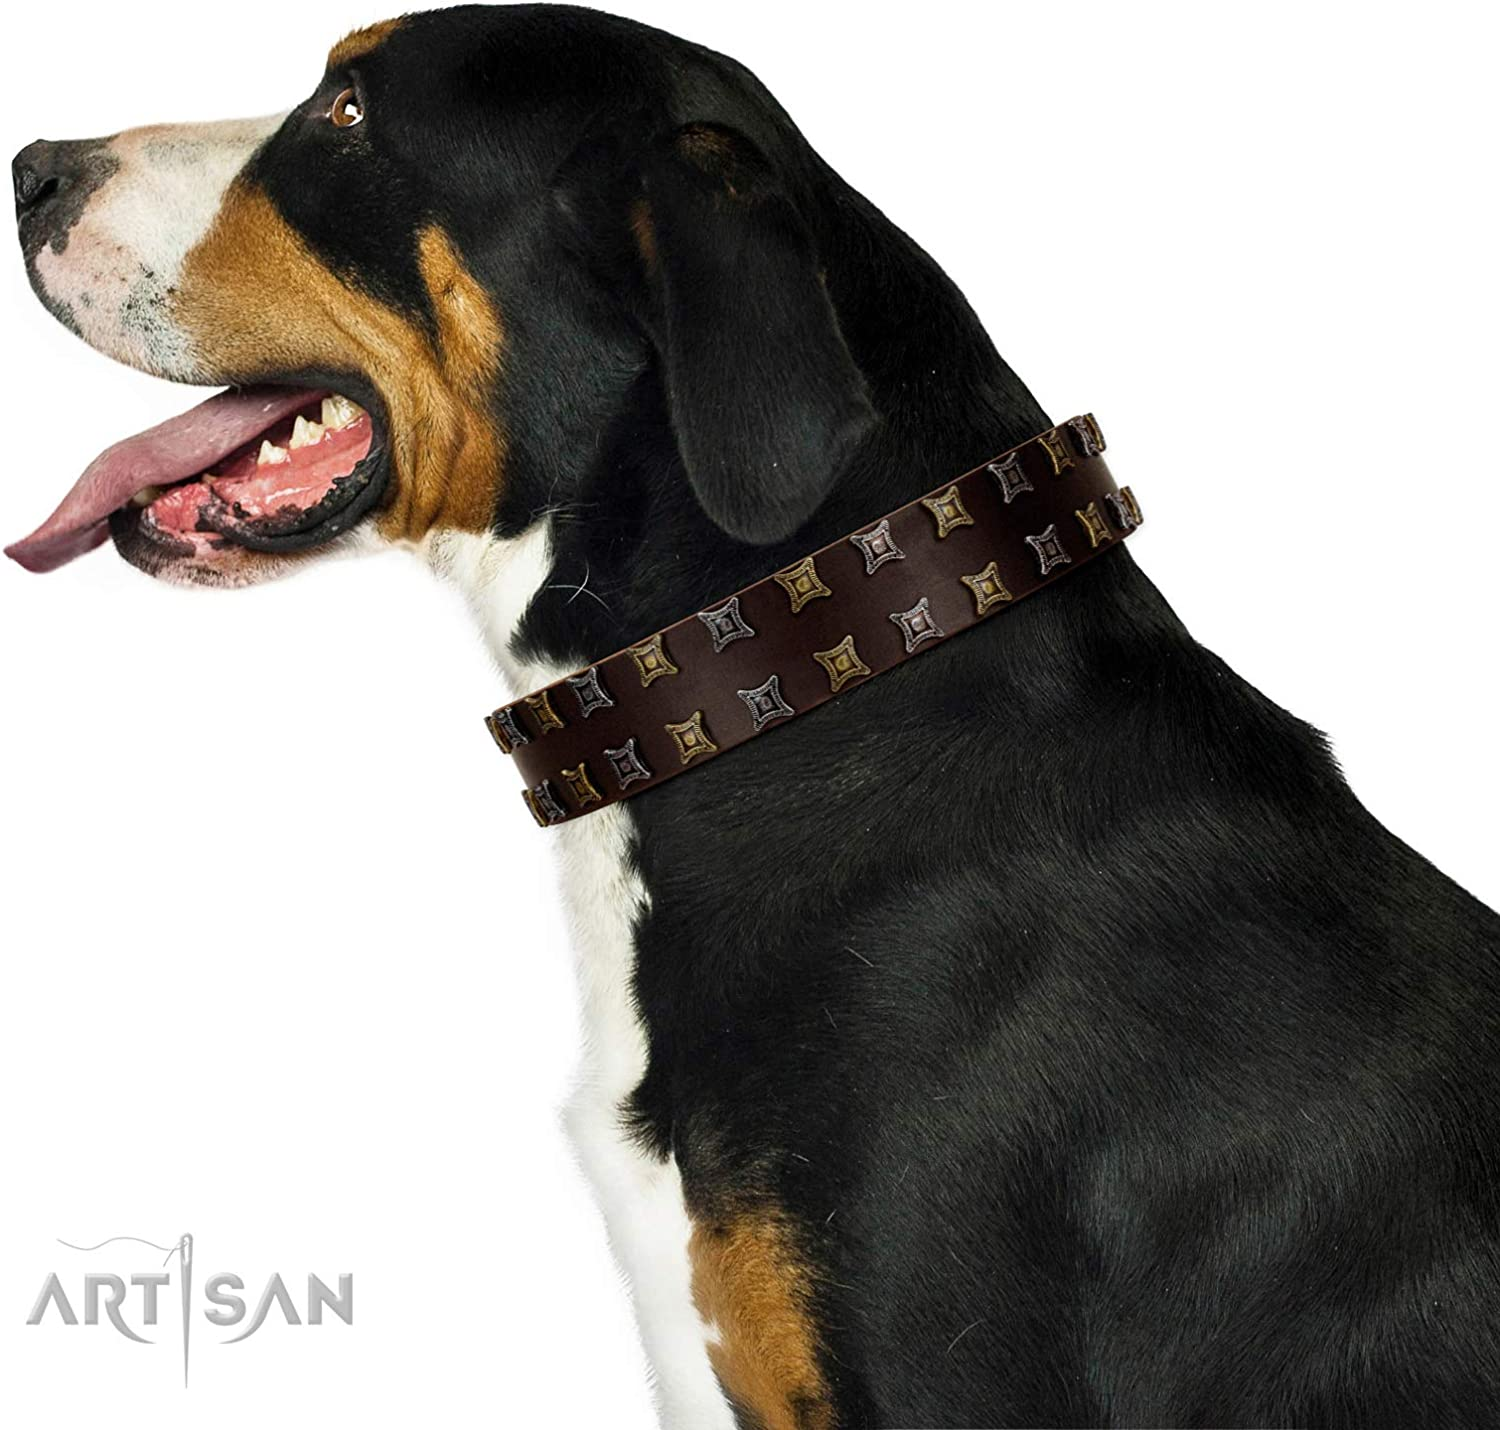 FDT Artisan 30 inch Fido's Pleasure Brown Leather Dog Collar with Amazing Studs  Exclusive Handcrafted Item  1 1 2 inch (40 cm) Wide  Gift Box Included